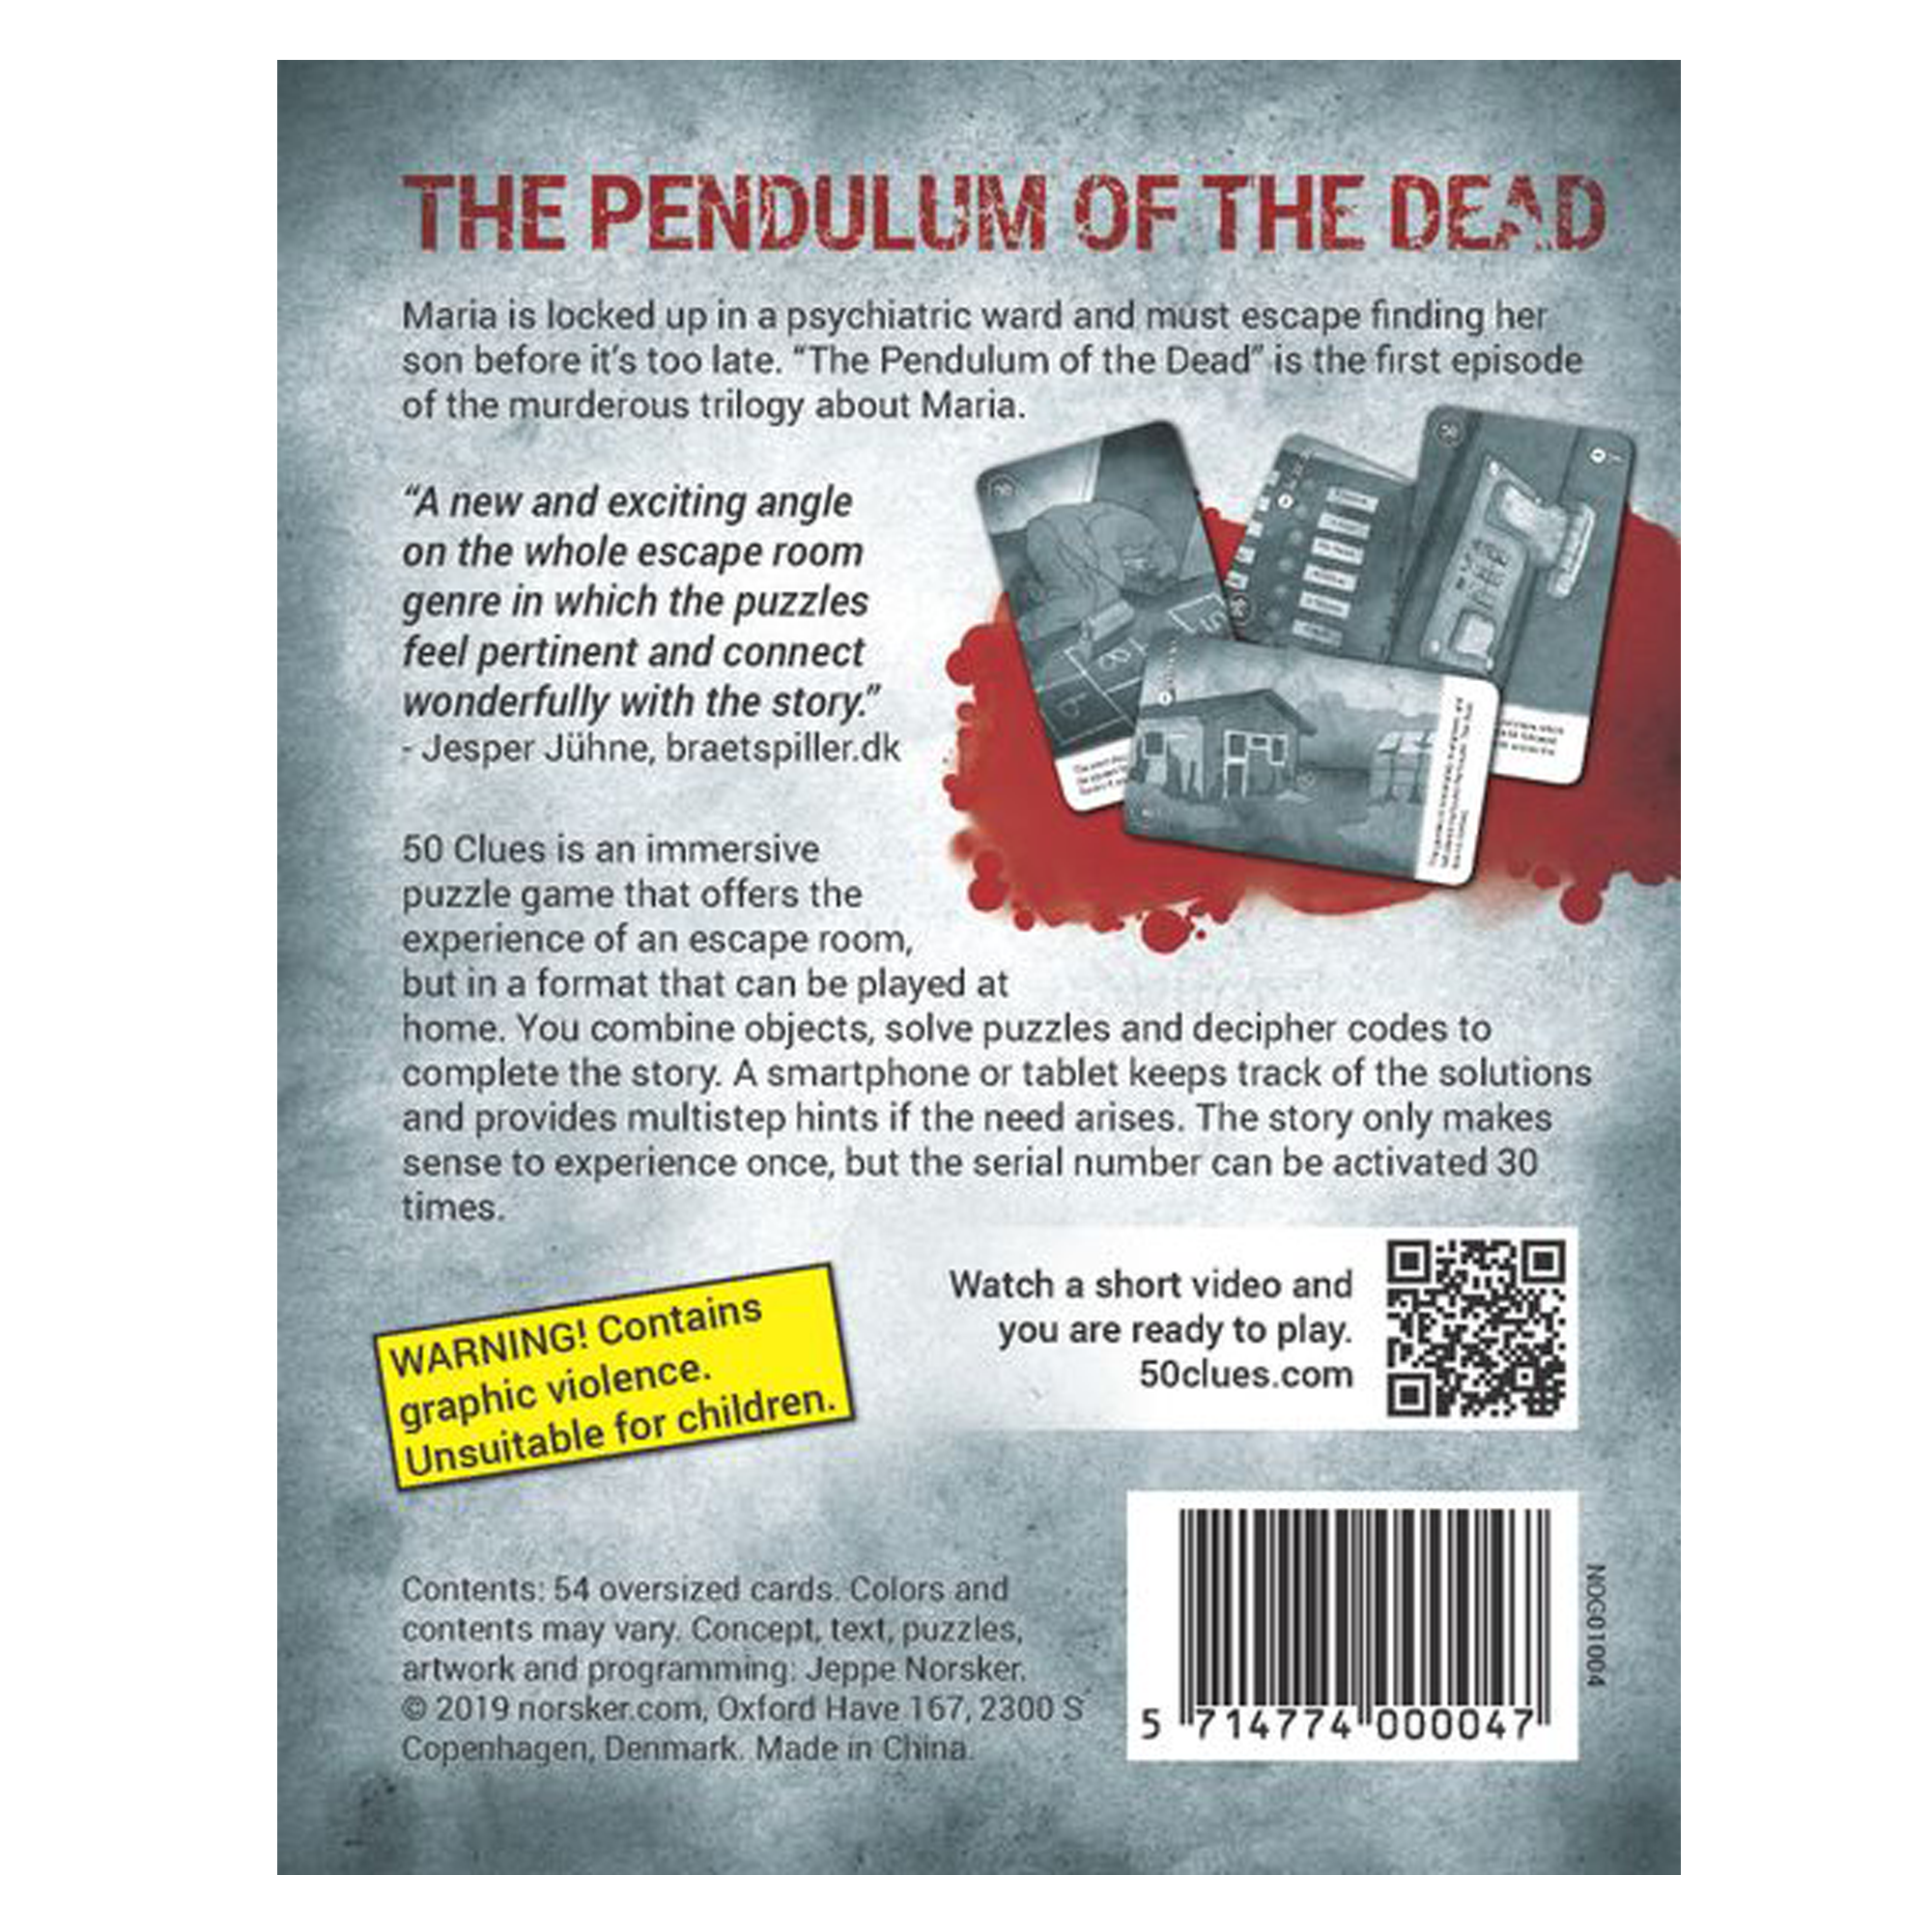 Norsker Games 50 Clues - The Pendulum of the Dead